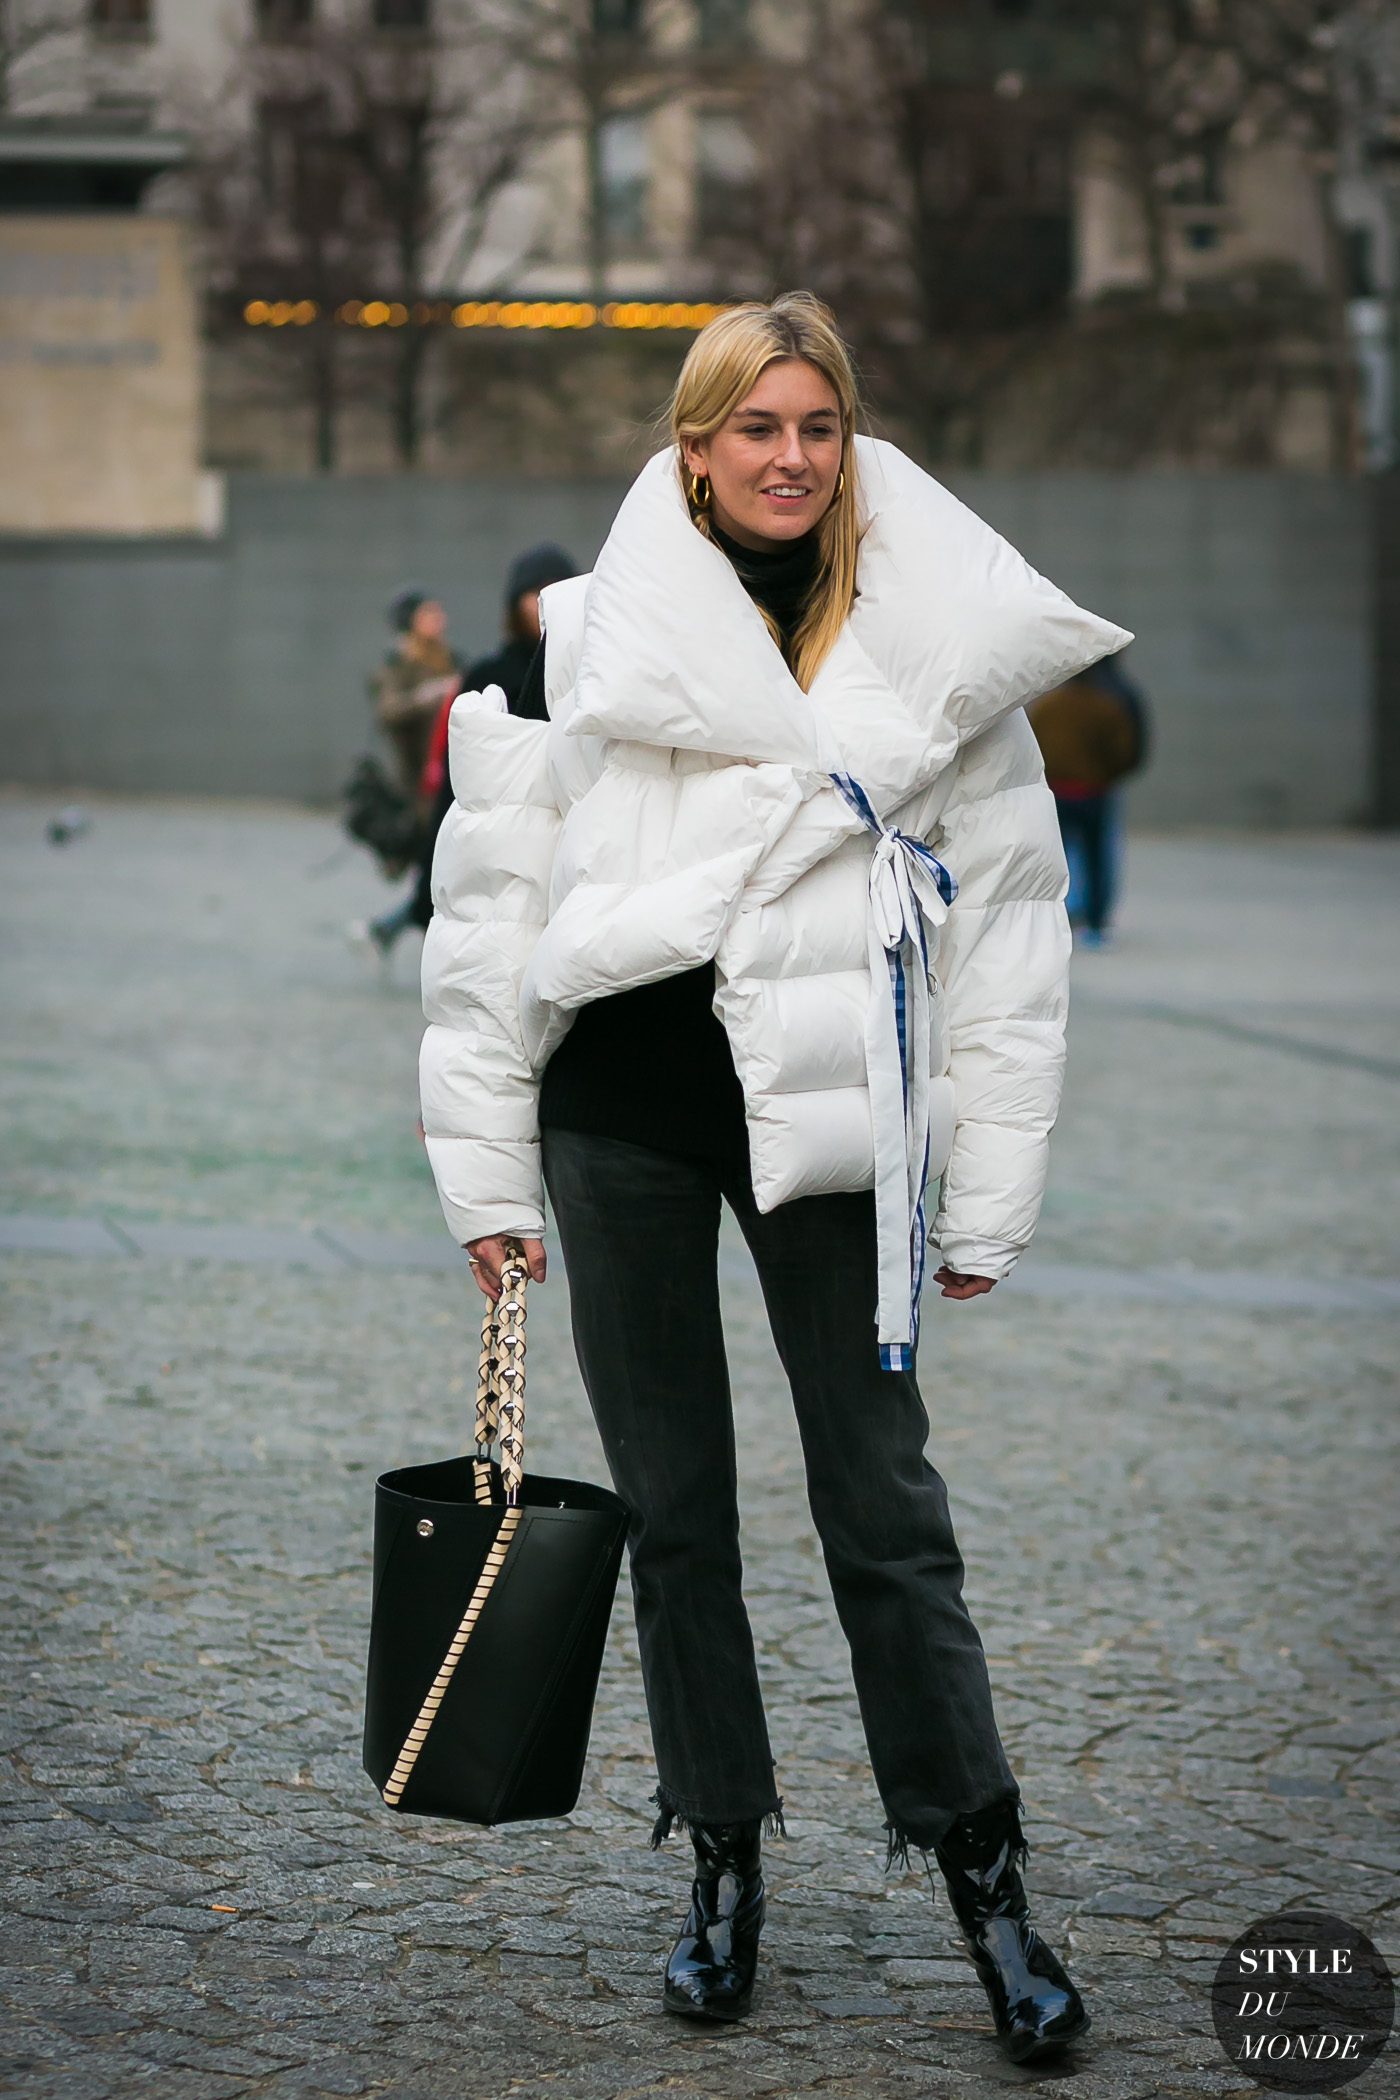 Camille Charriere by STYLEDUMONDE Street Style Fashion Photography0E2A7857